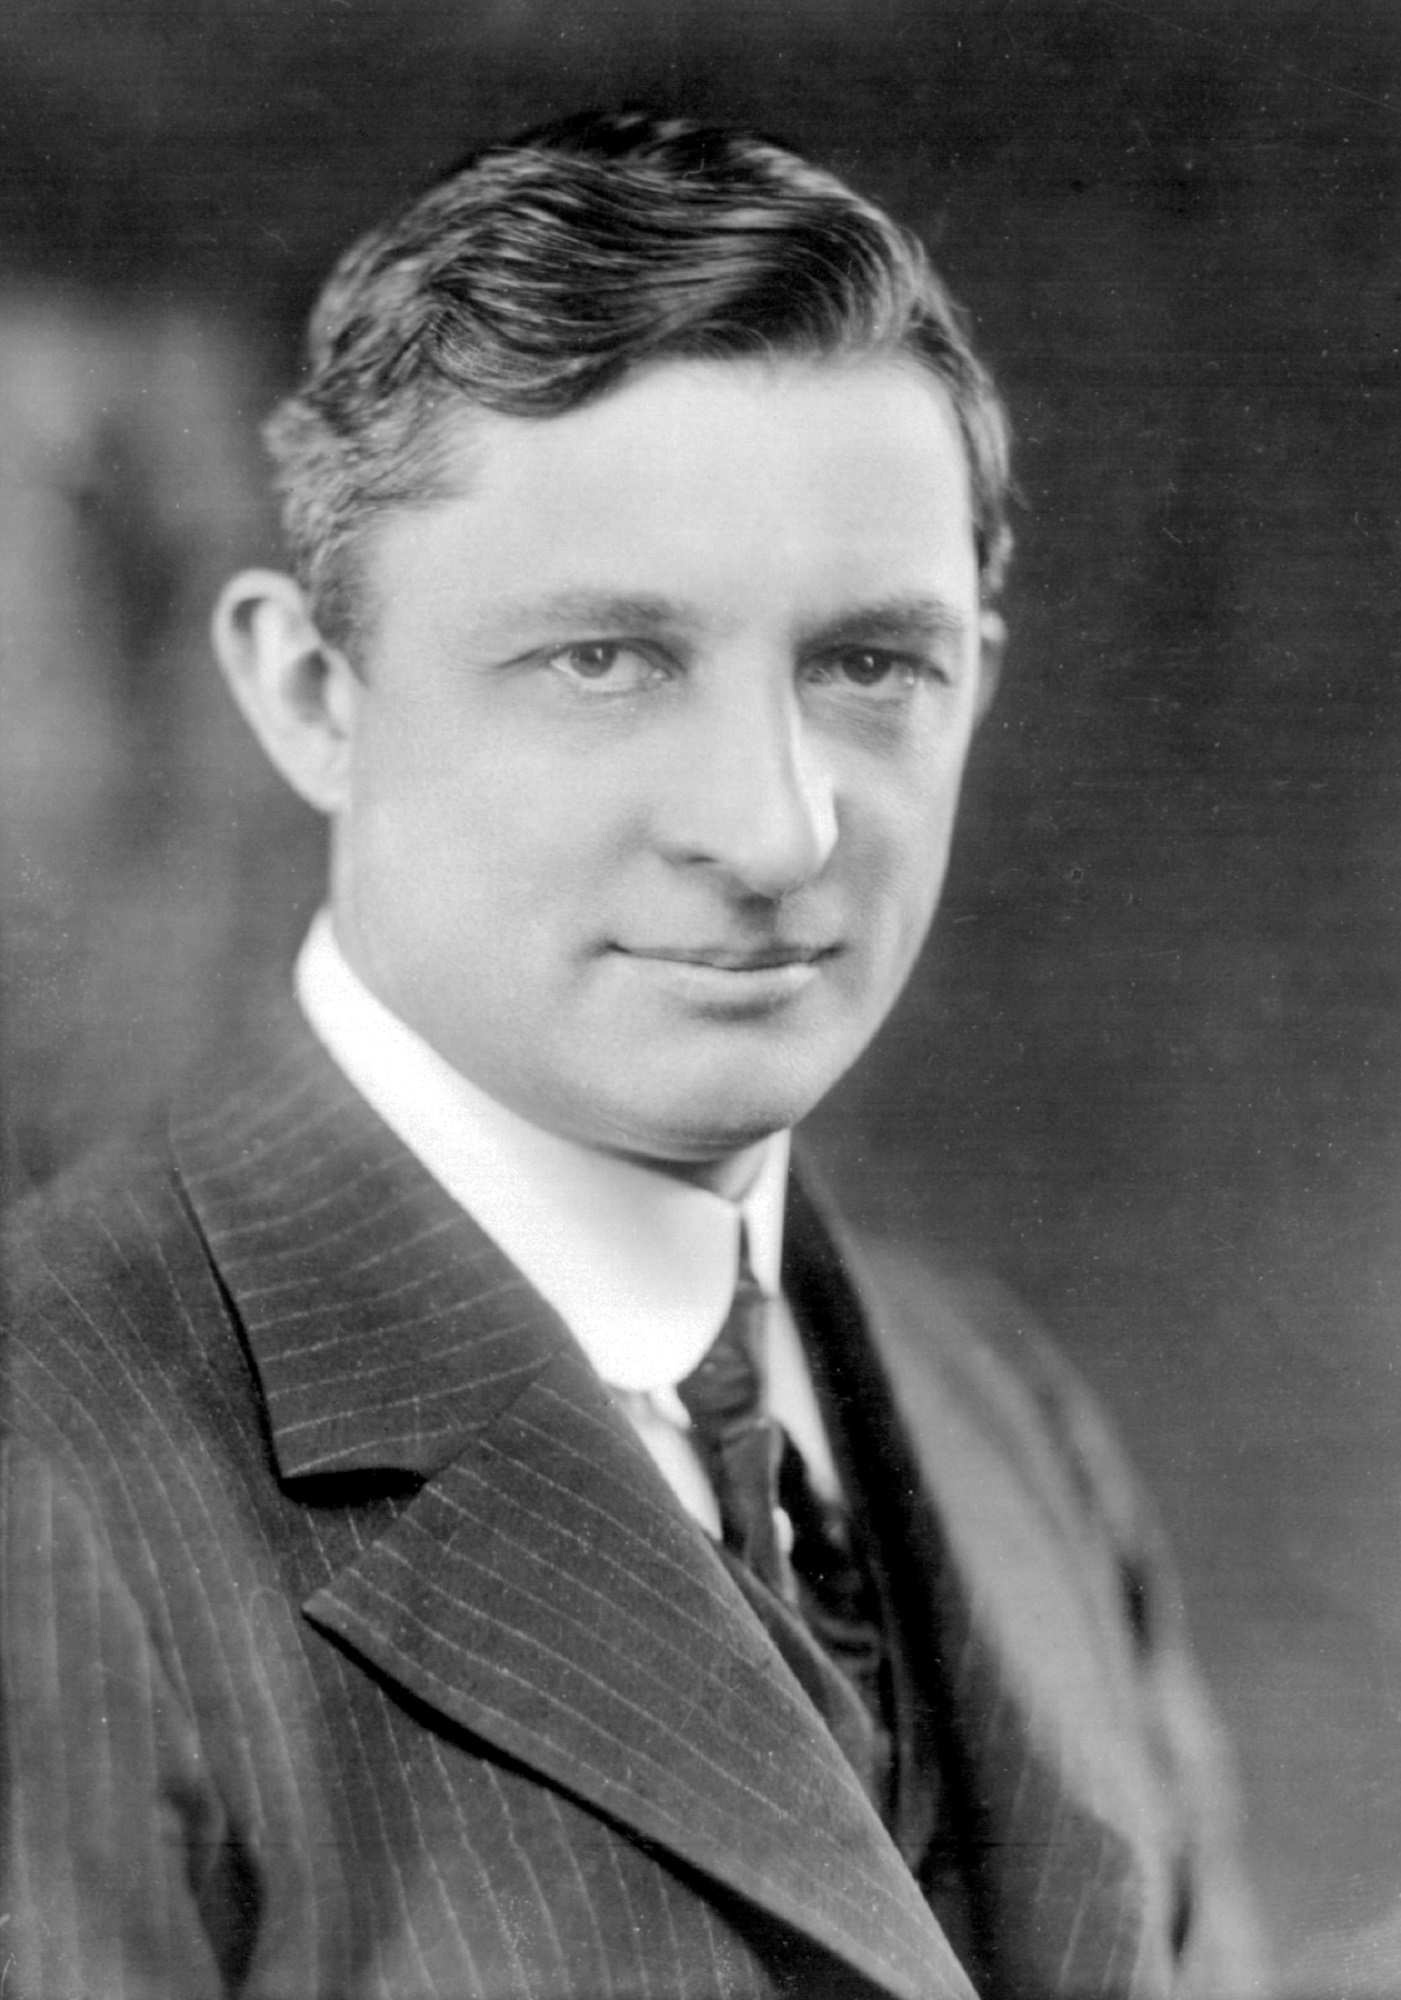 Willis Haviland Carrier was an American engineer, best known for inventing modern air conditioning.